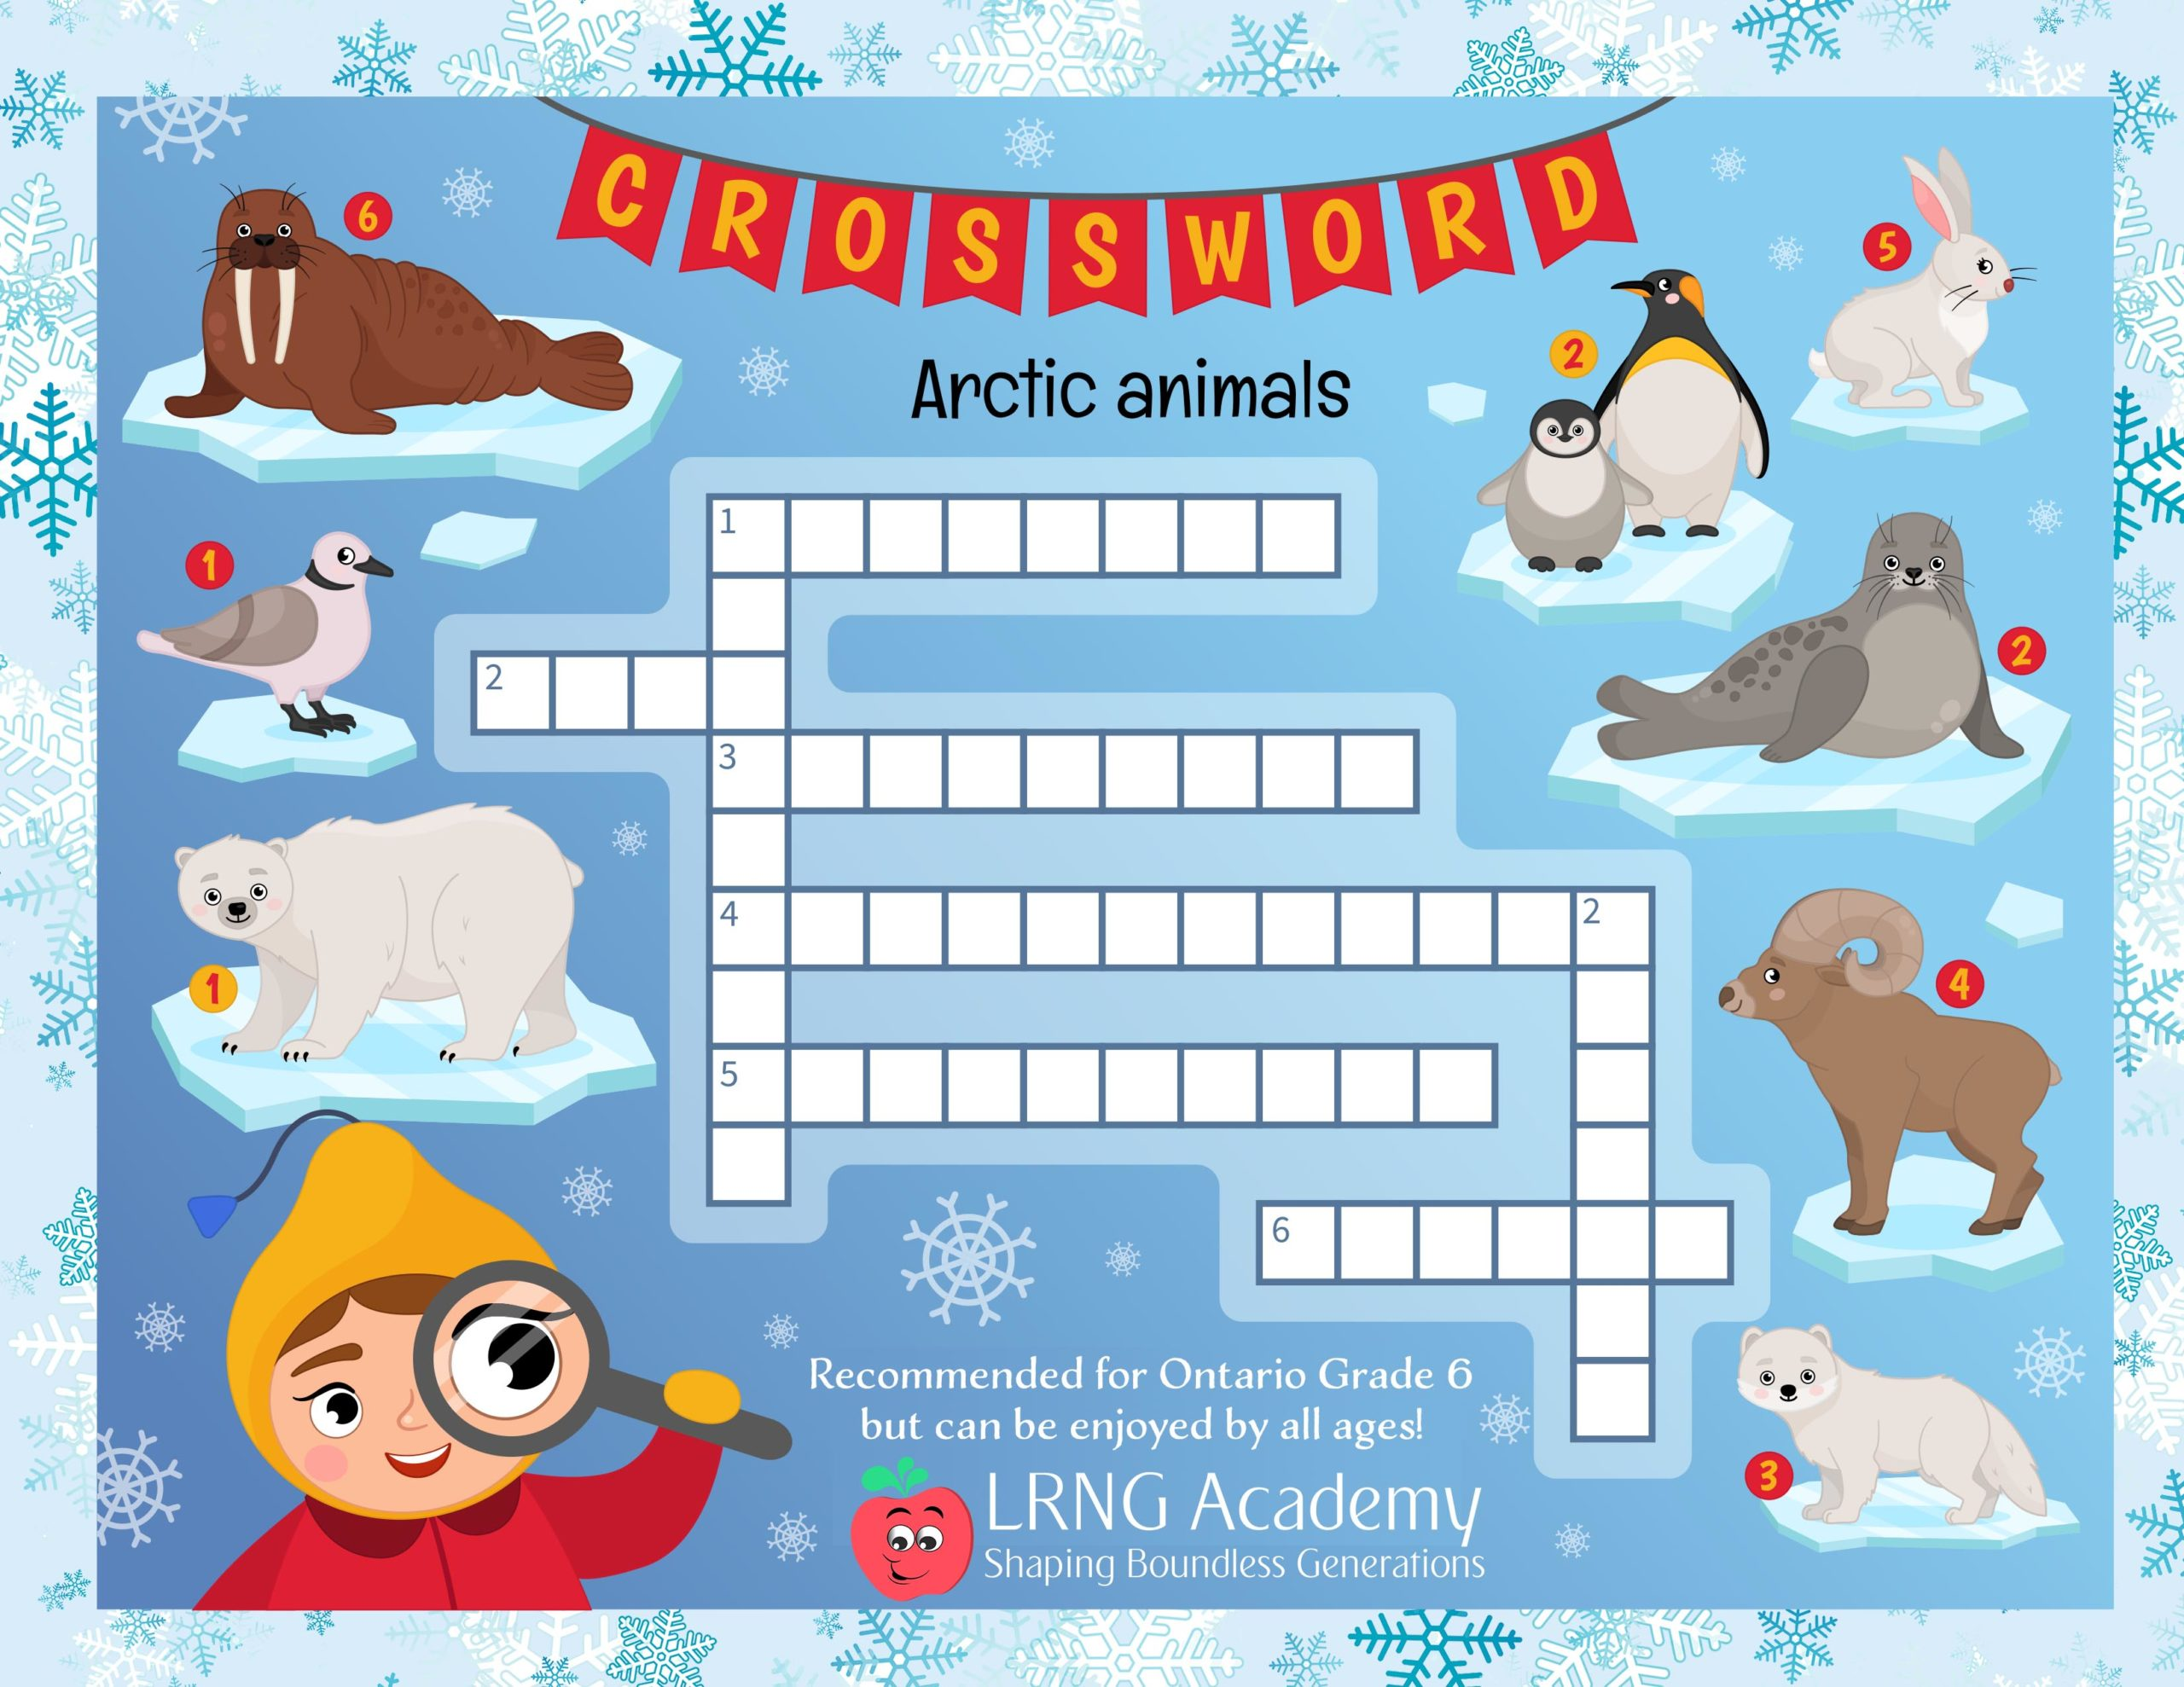 Arctic Animals Crossword scaled - Appie Activities - LRNG Academy - Shaping Boundless Generations - Online Tutoring | Online Learning | eLearning | Virtual School | Tutoring Service | Virtual Learning